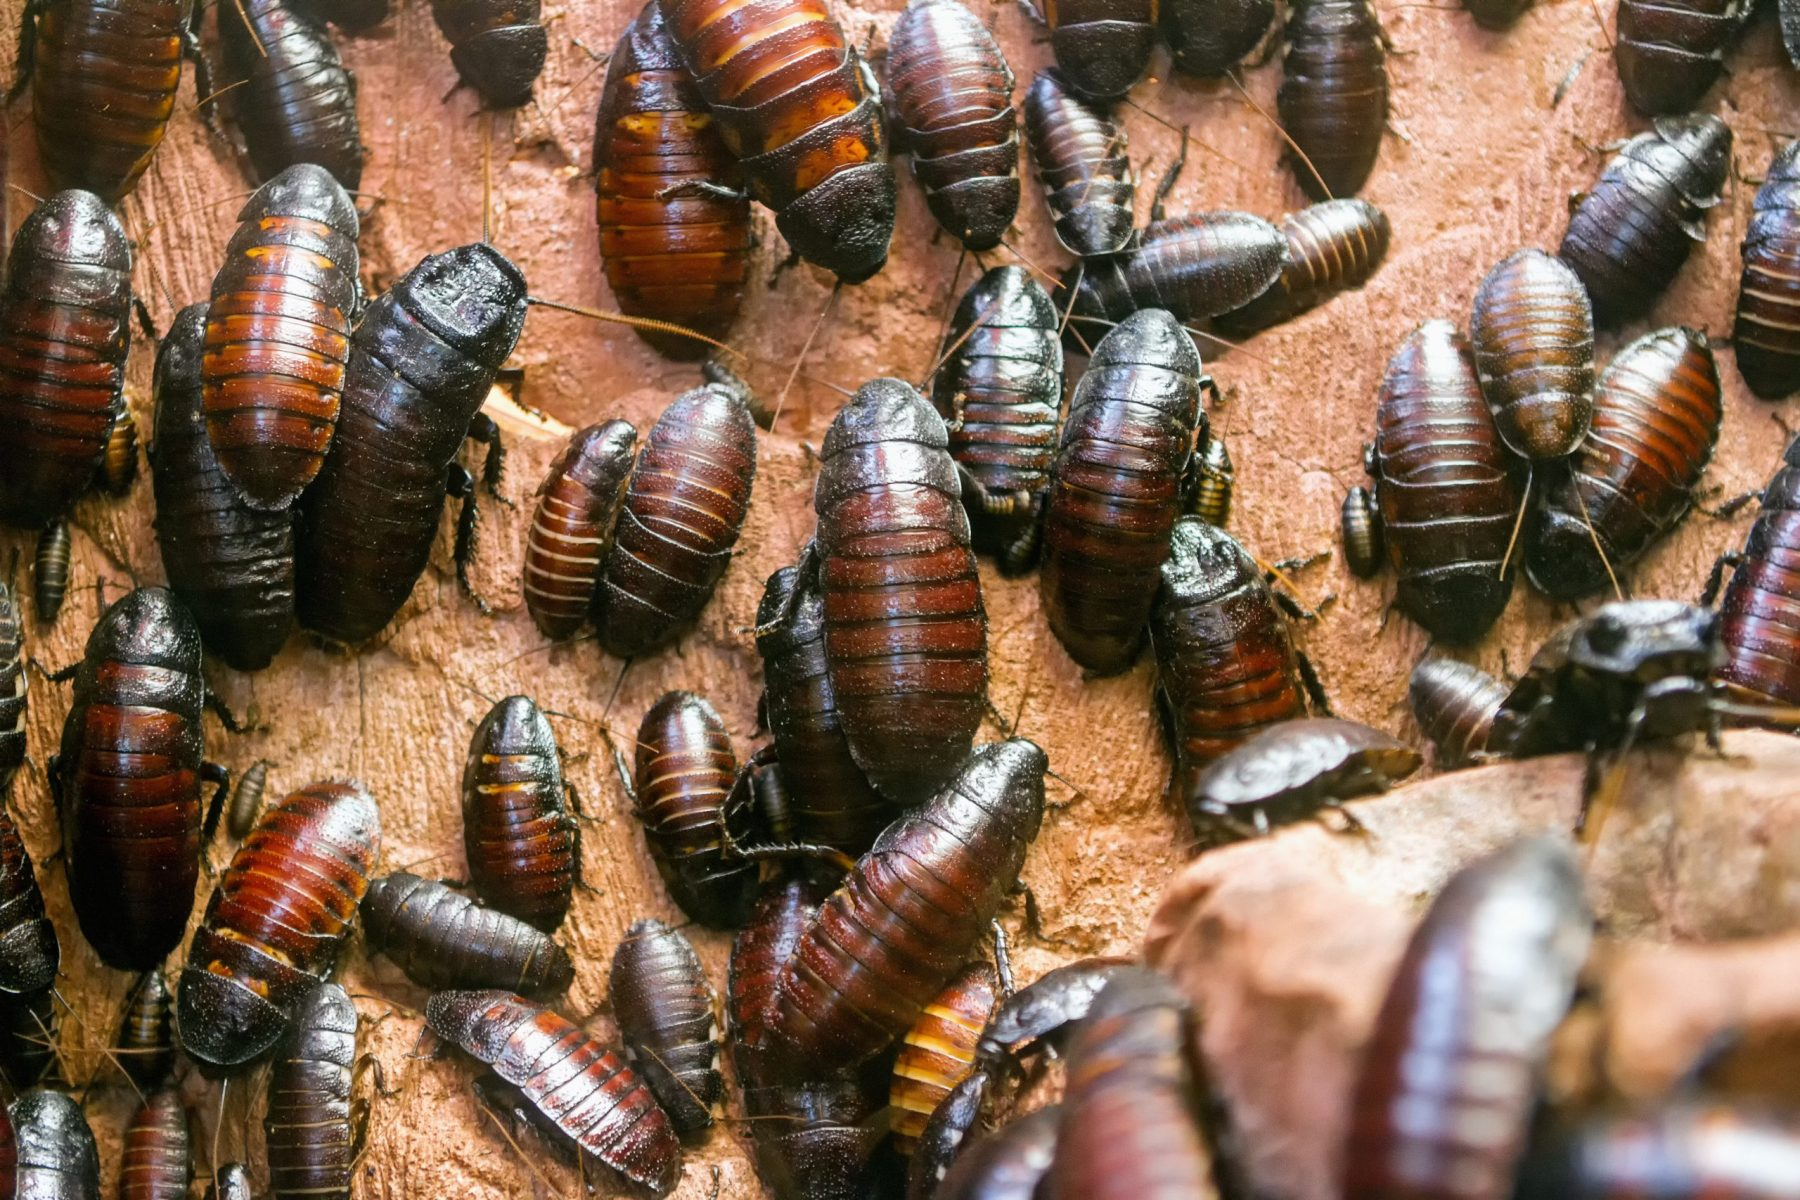 Cockroaches clustered together